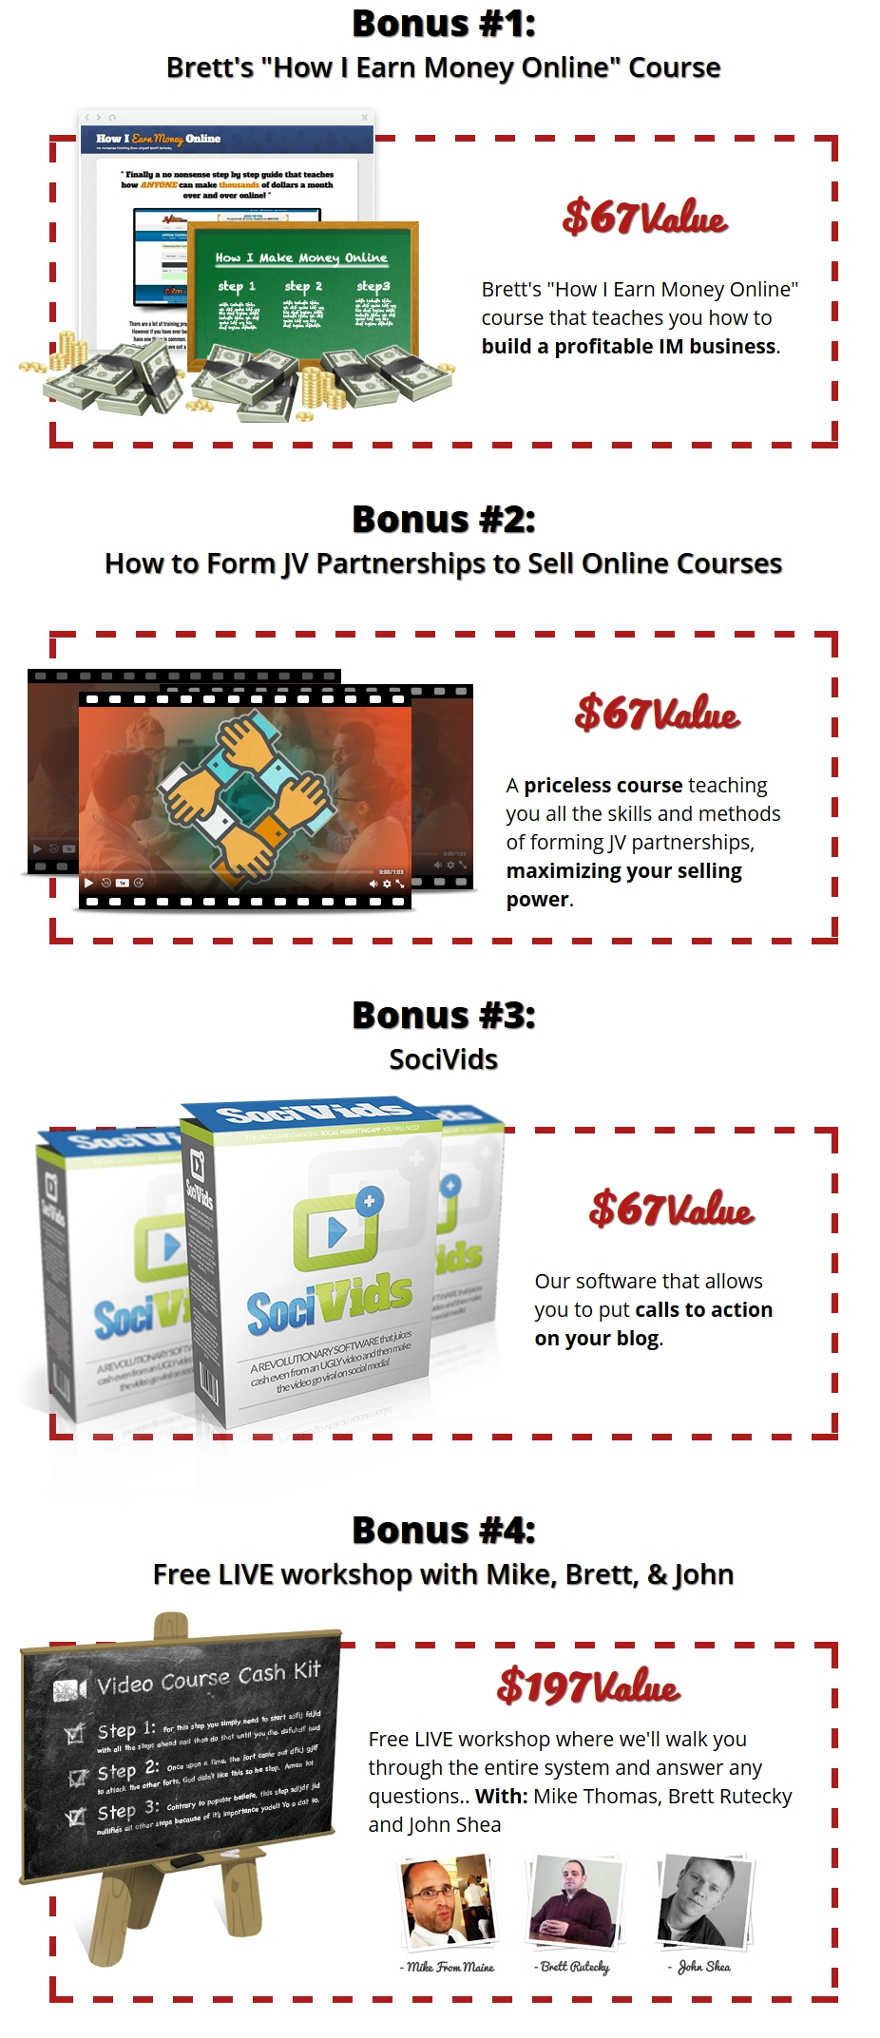 Video Course Cash Kit Bonuses